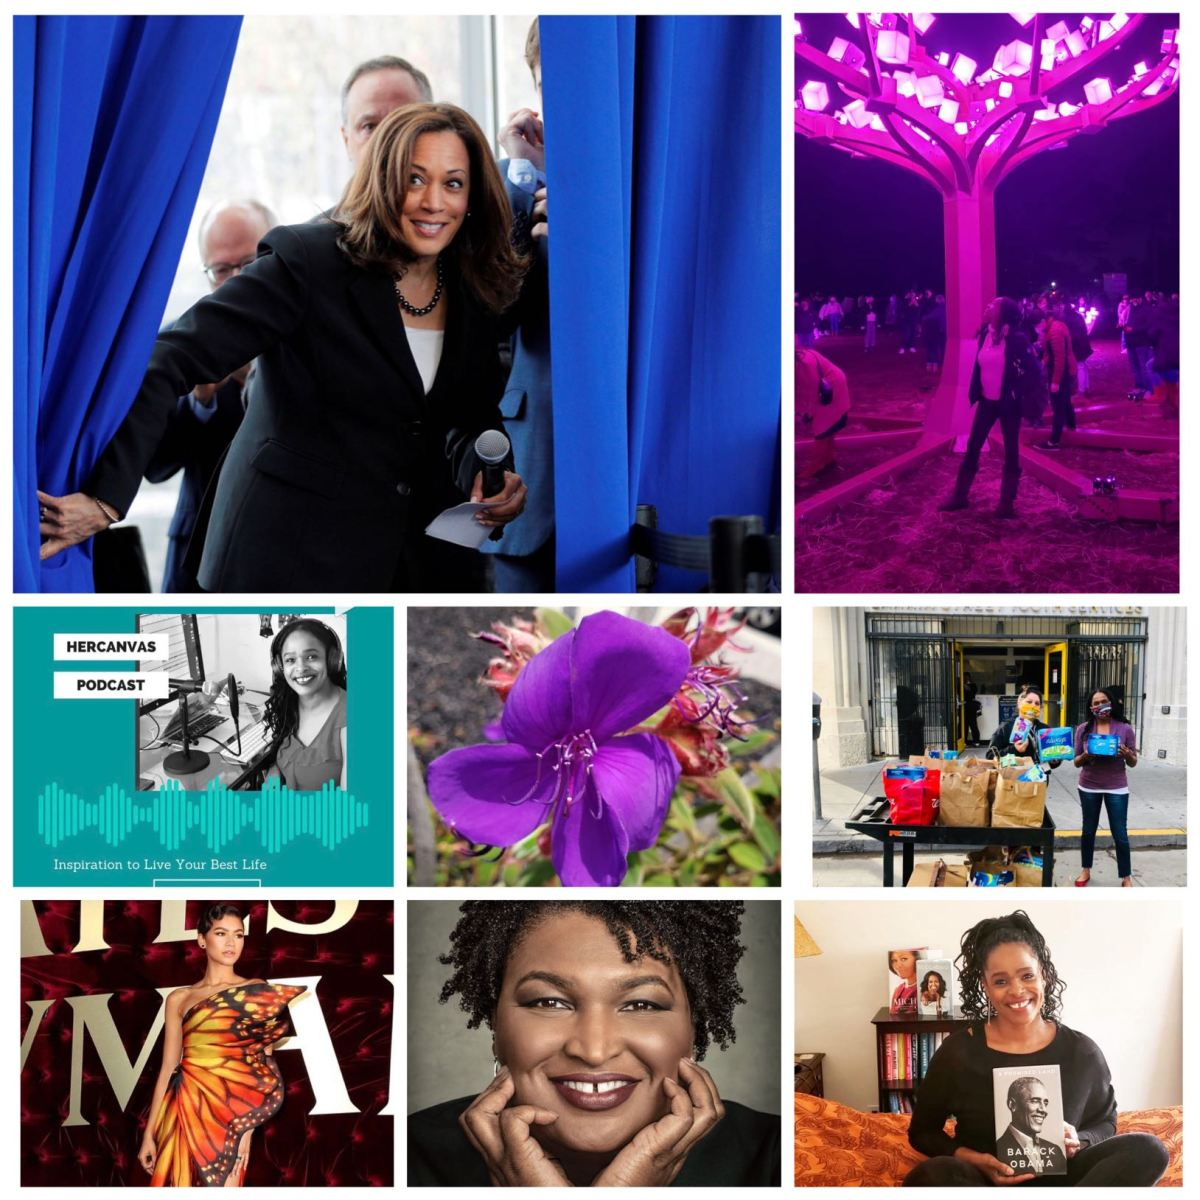 Collage of photos - image of women delivering feminine hygiene products to Distributing Dignity, image of Zendaya sporting a fashionable gown, photos of VP Elect Kamala Harris and Stacey Abrams, photo of woman holding Barack Obama's book Promised Land, photo of beautiful purple flower, photo of HerCanvas podcast host, photo of woman looking up at a beautiful display of lights